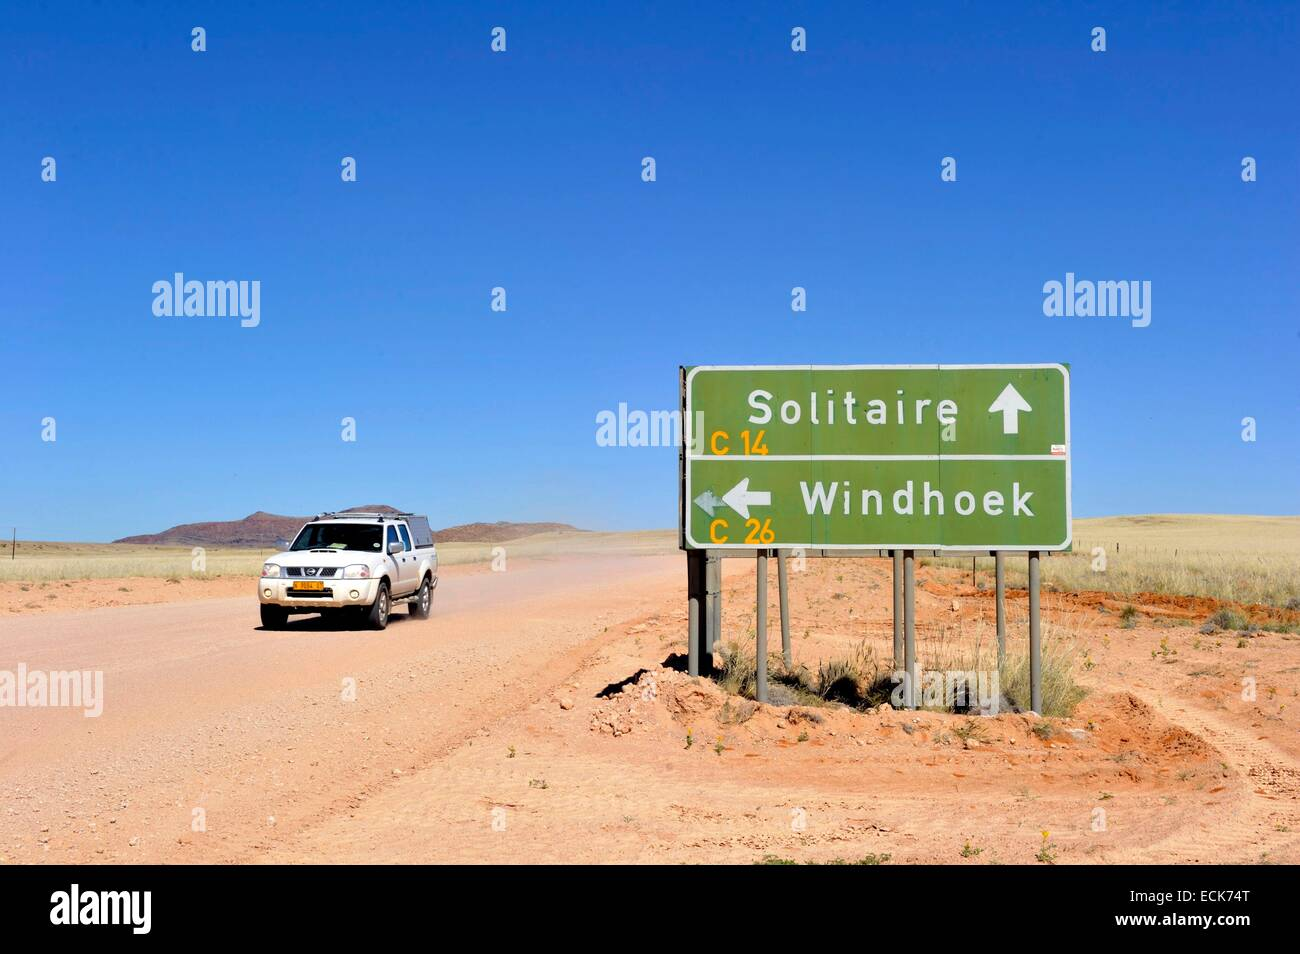 Namibia, Khomas region, the road to Solitaire - Stock Image